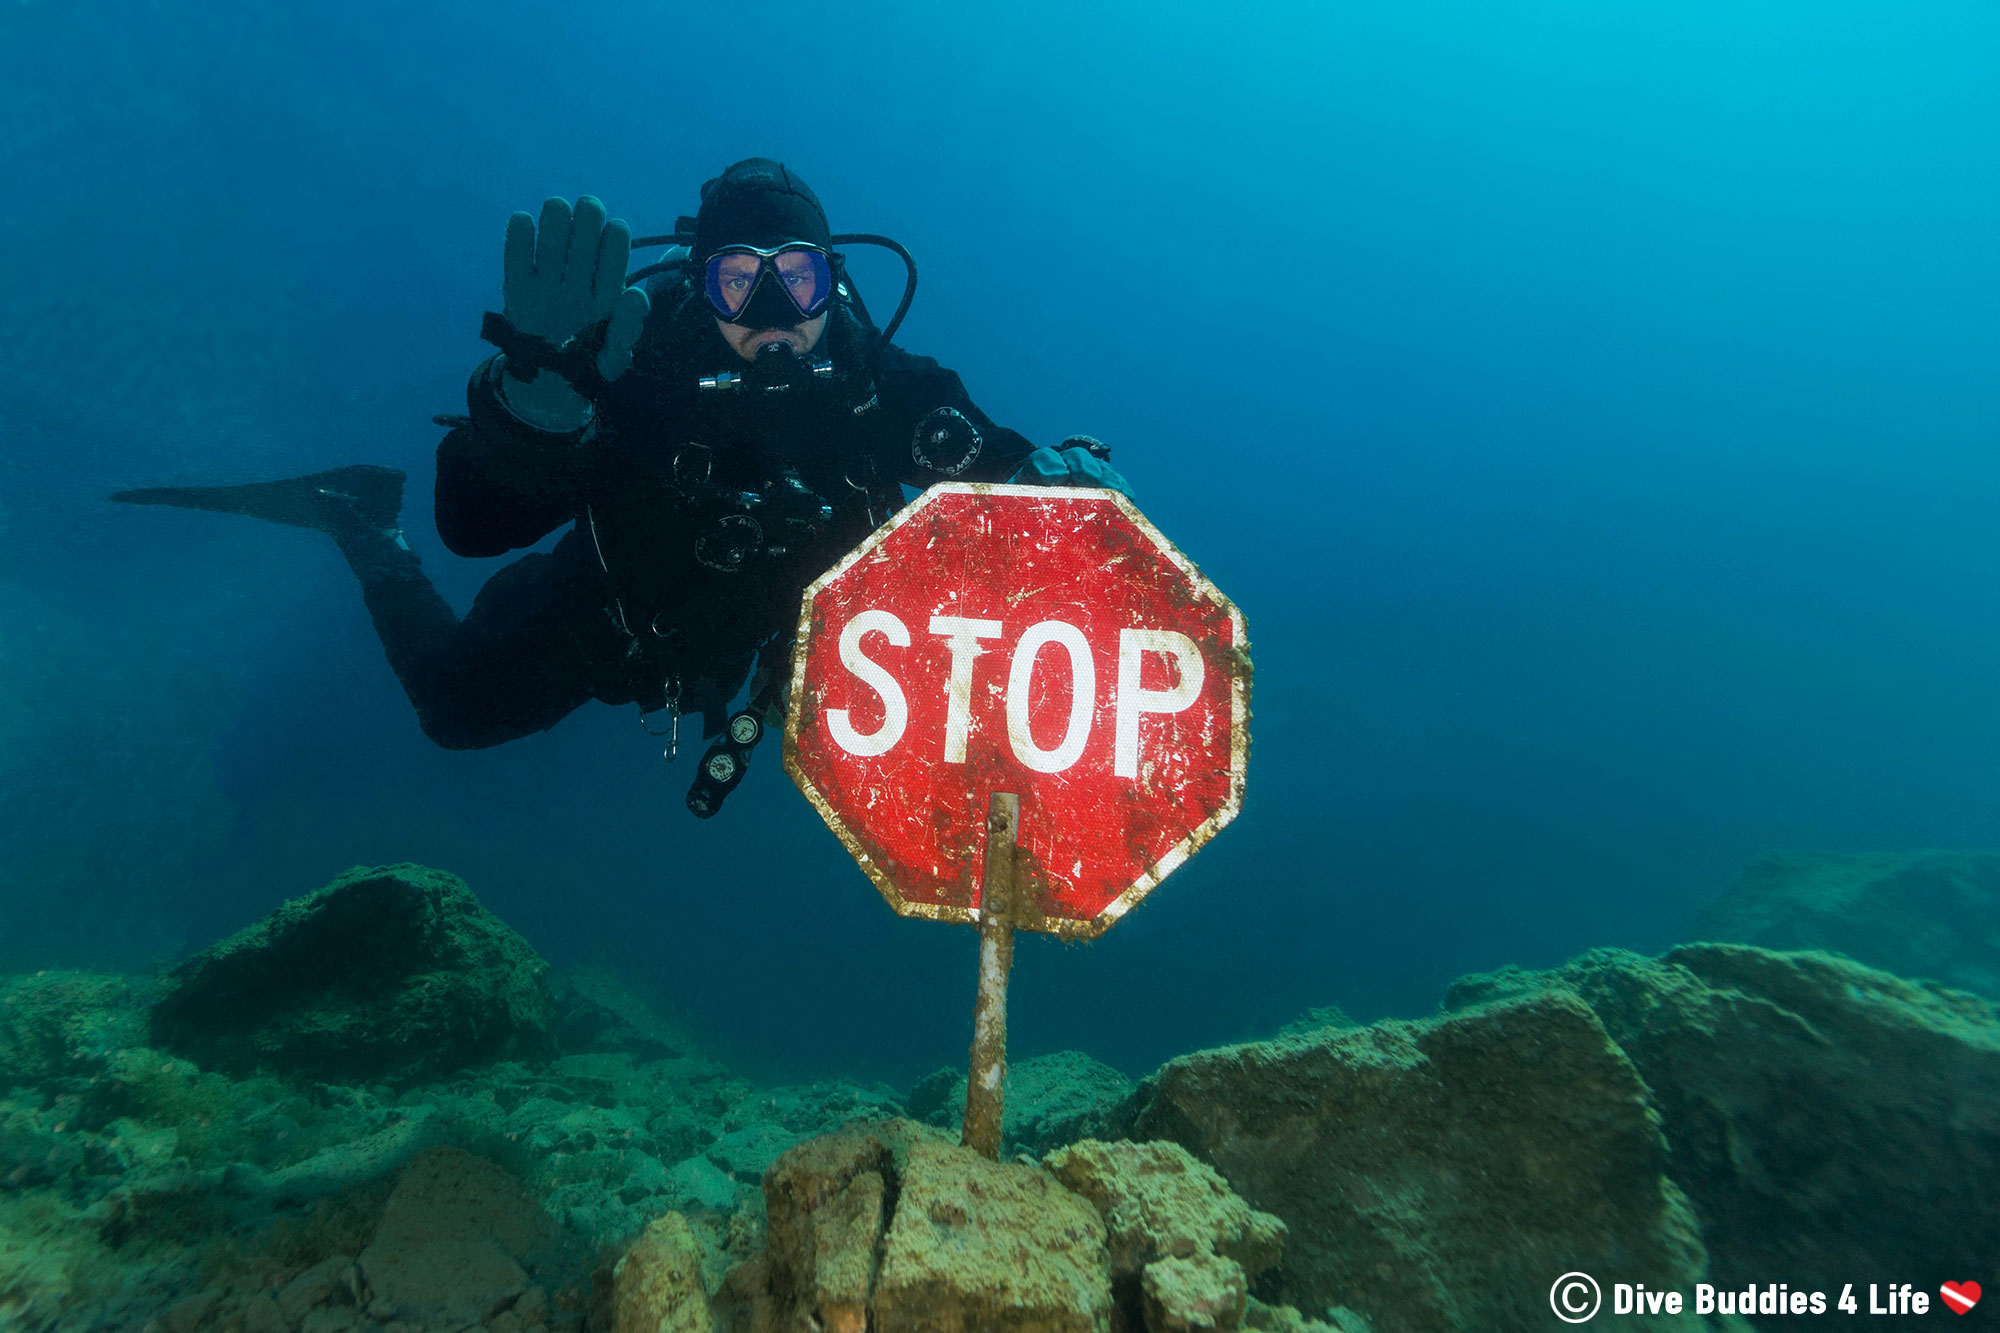 Scuba Diver Joey Reminding People To Stop At 15 Feet For Their Safety Stop, Sudbury Ontario